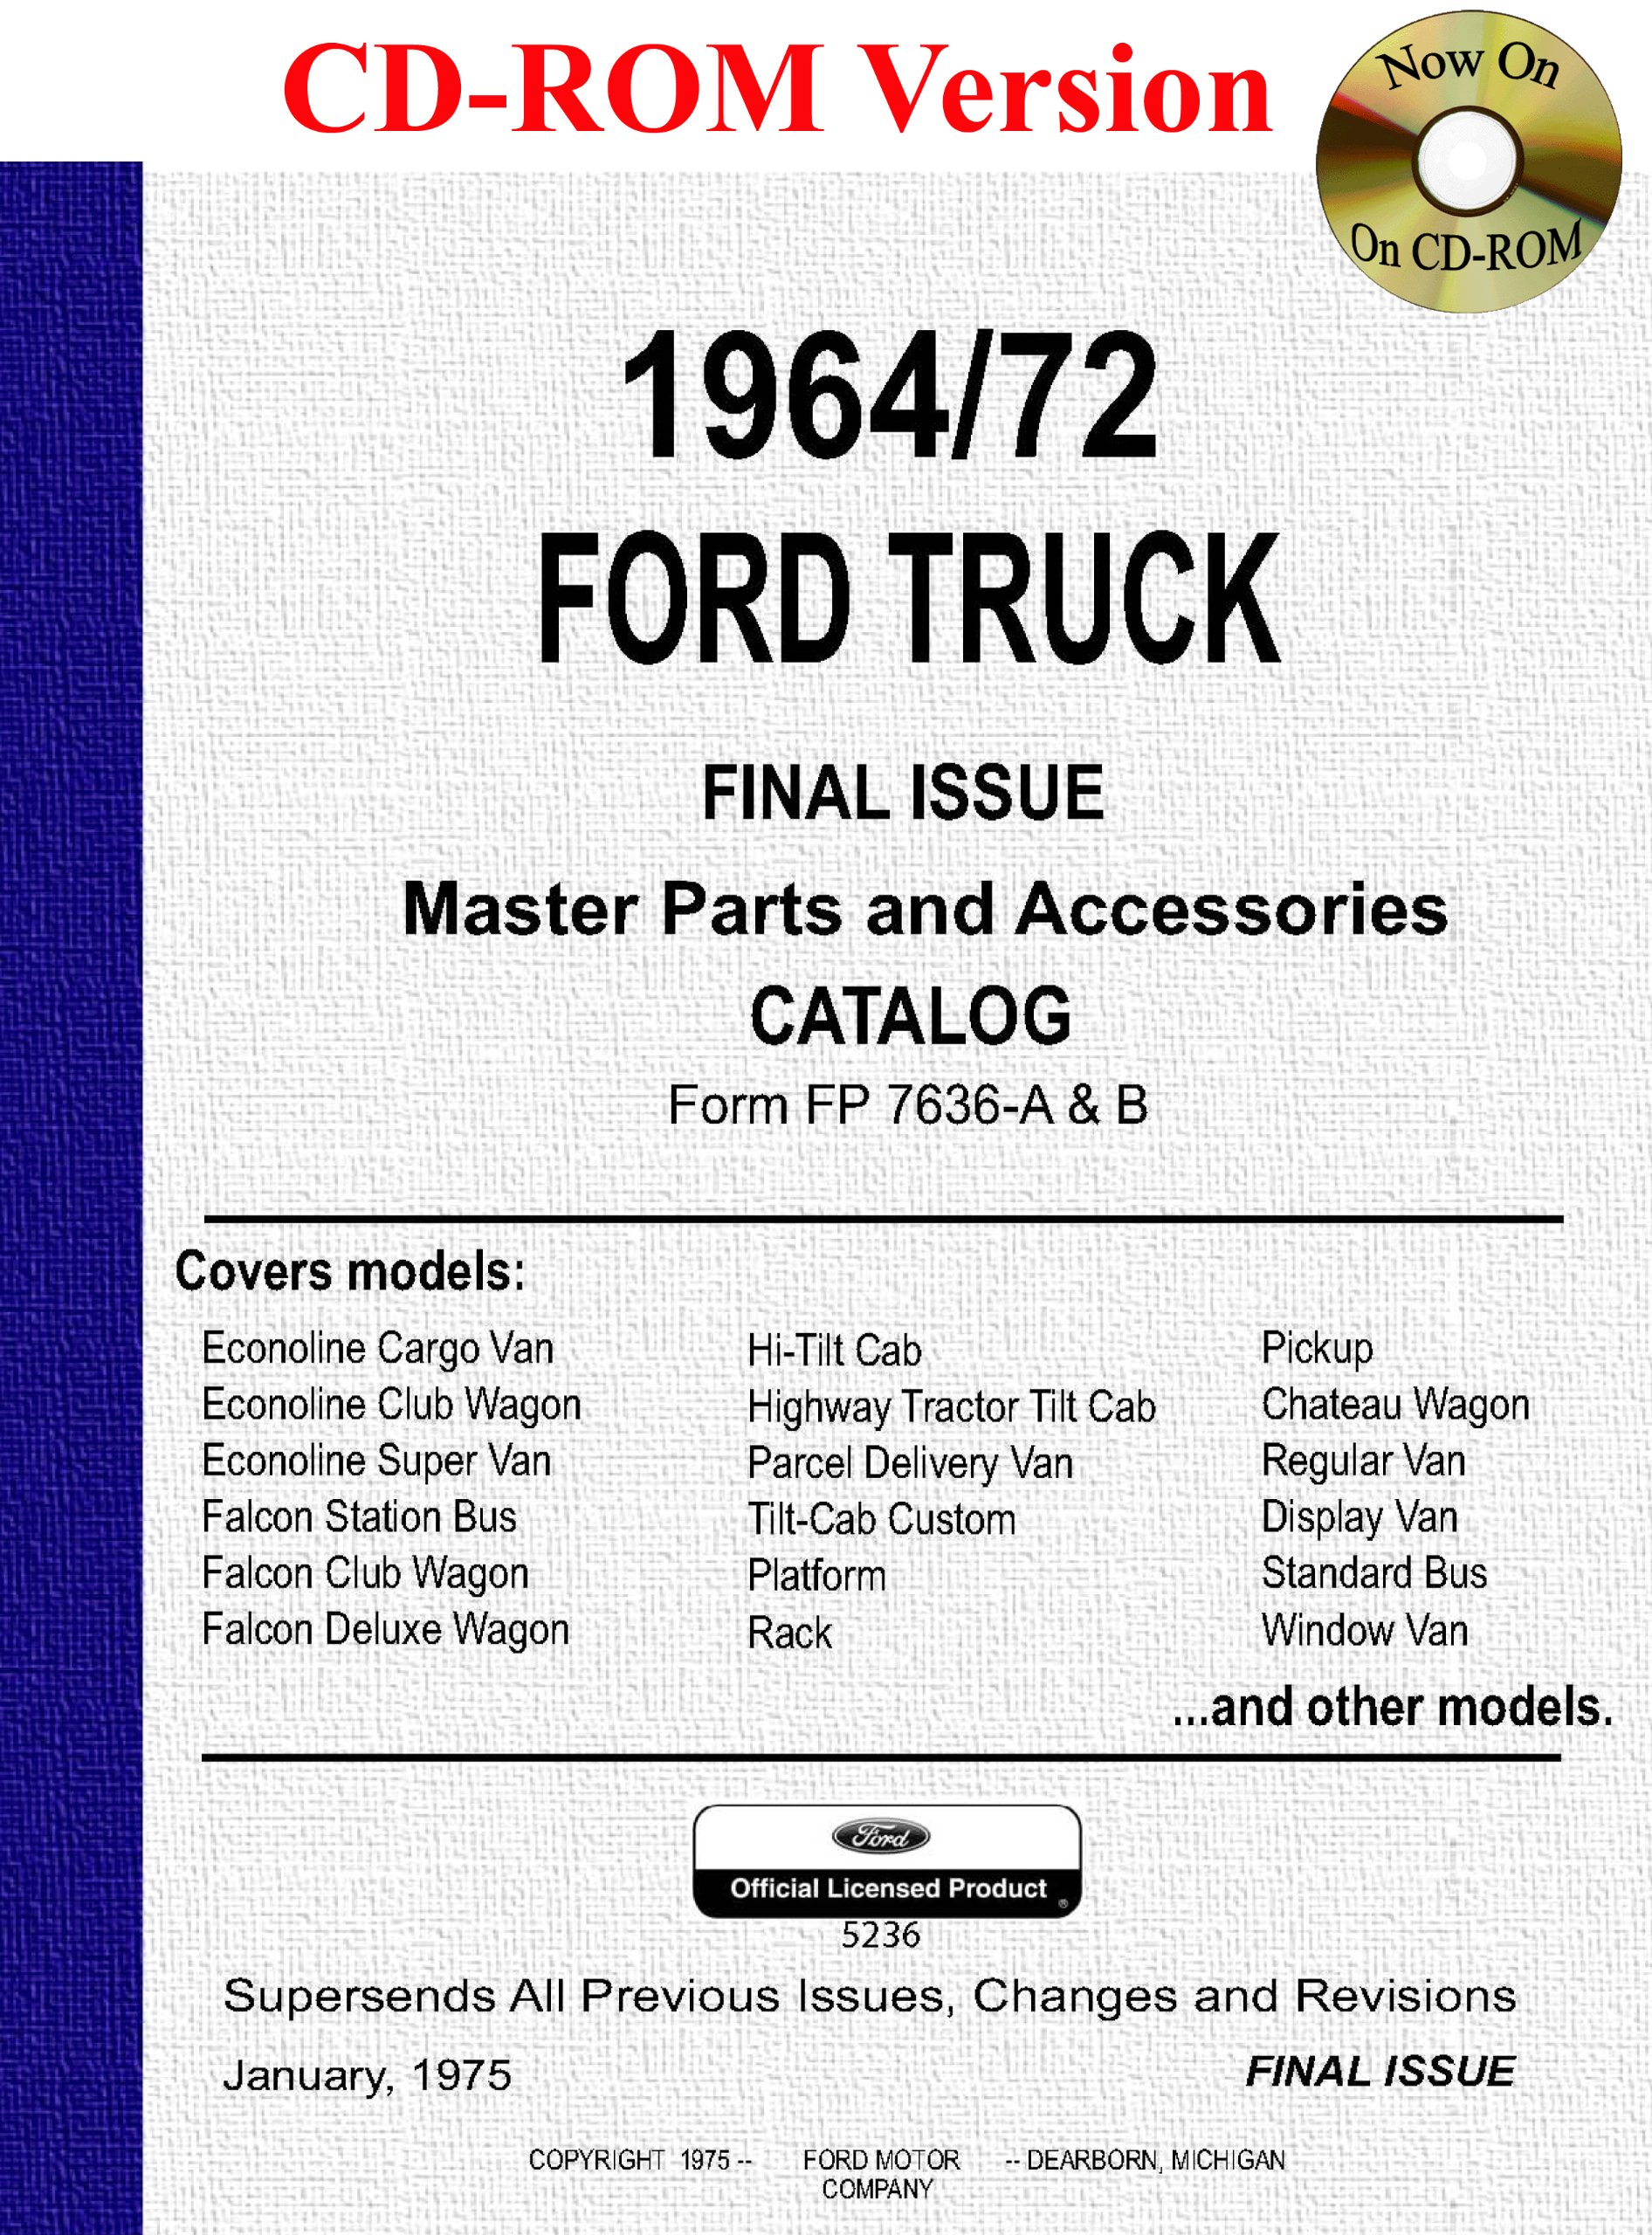 1964 1972 ford truck master parts and accessory catalog ford motor company david e leblanc 9781603710039 amazon com books